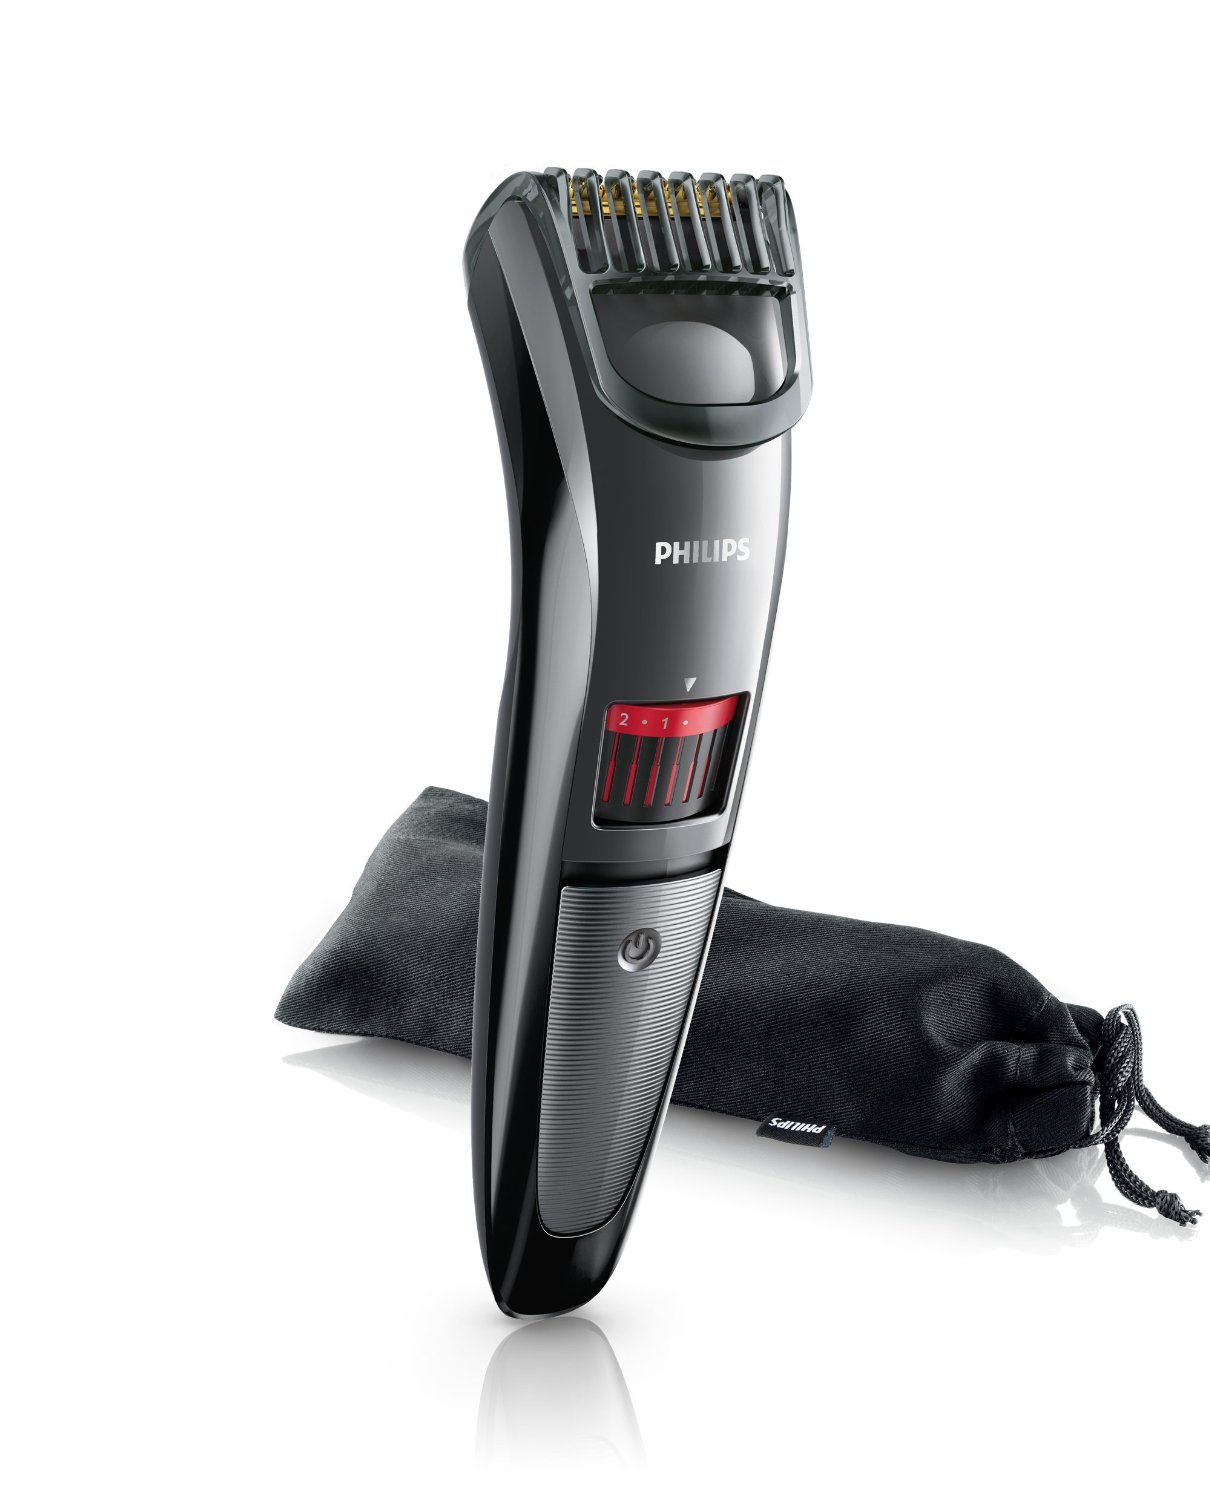 philips qt4015 23 stubble trimmer review beard trimmer reviews. Black Bedroom Furniture Sets. Home Design Ideas